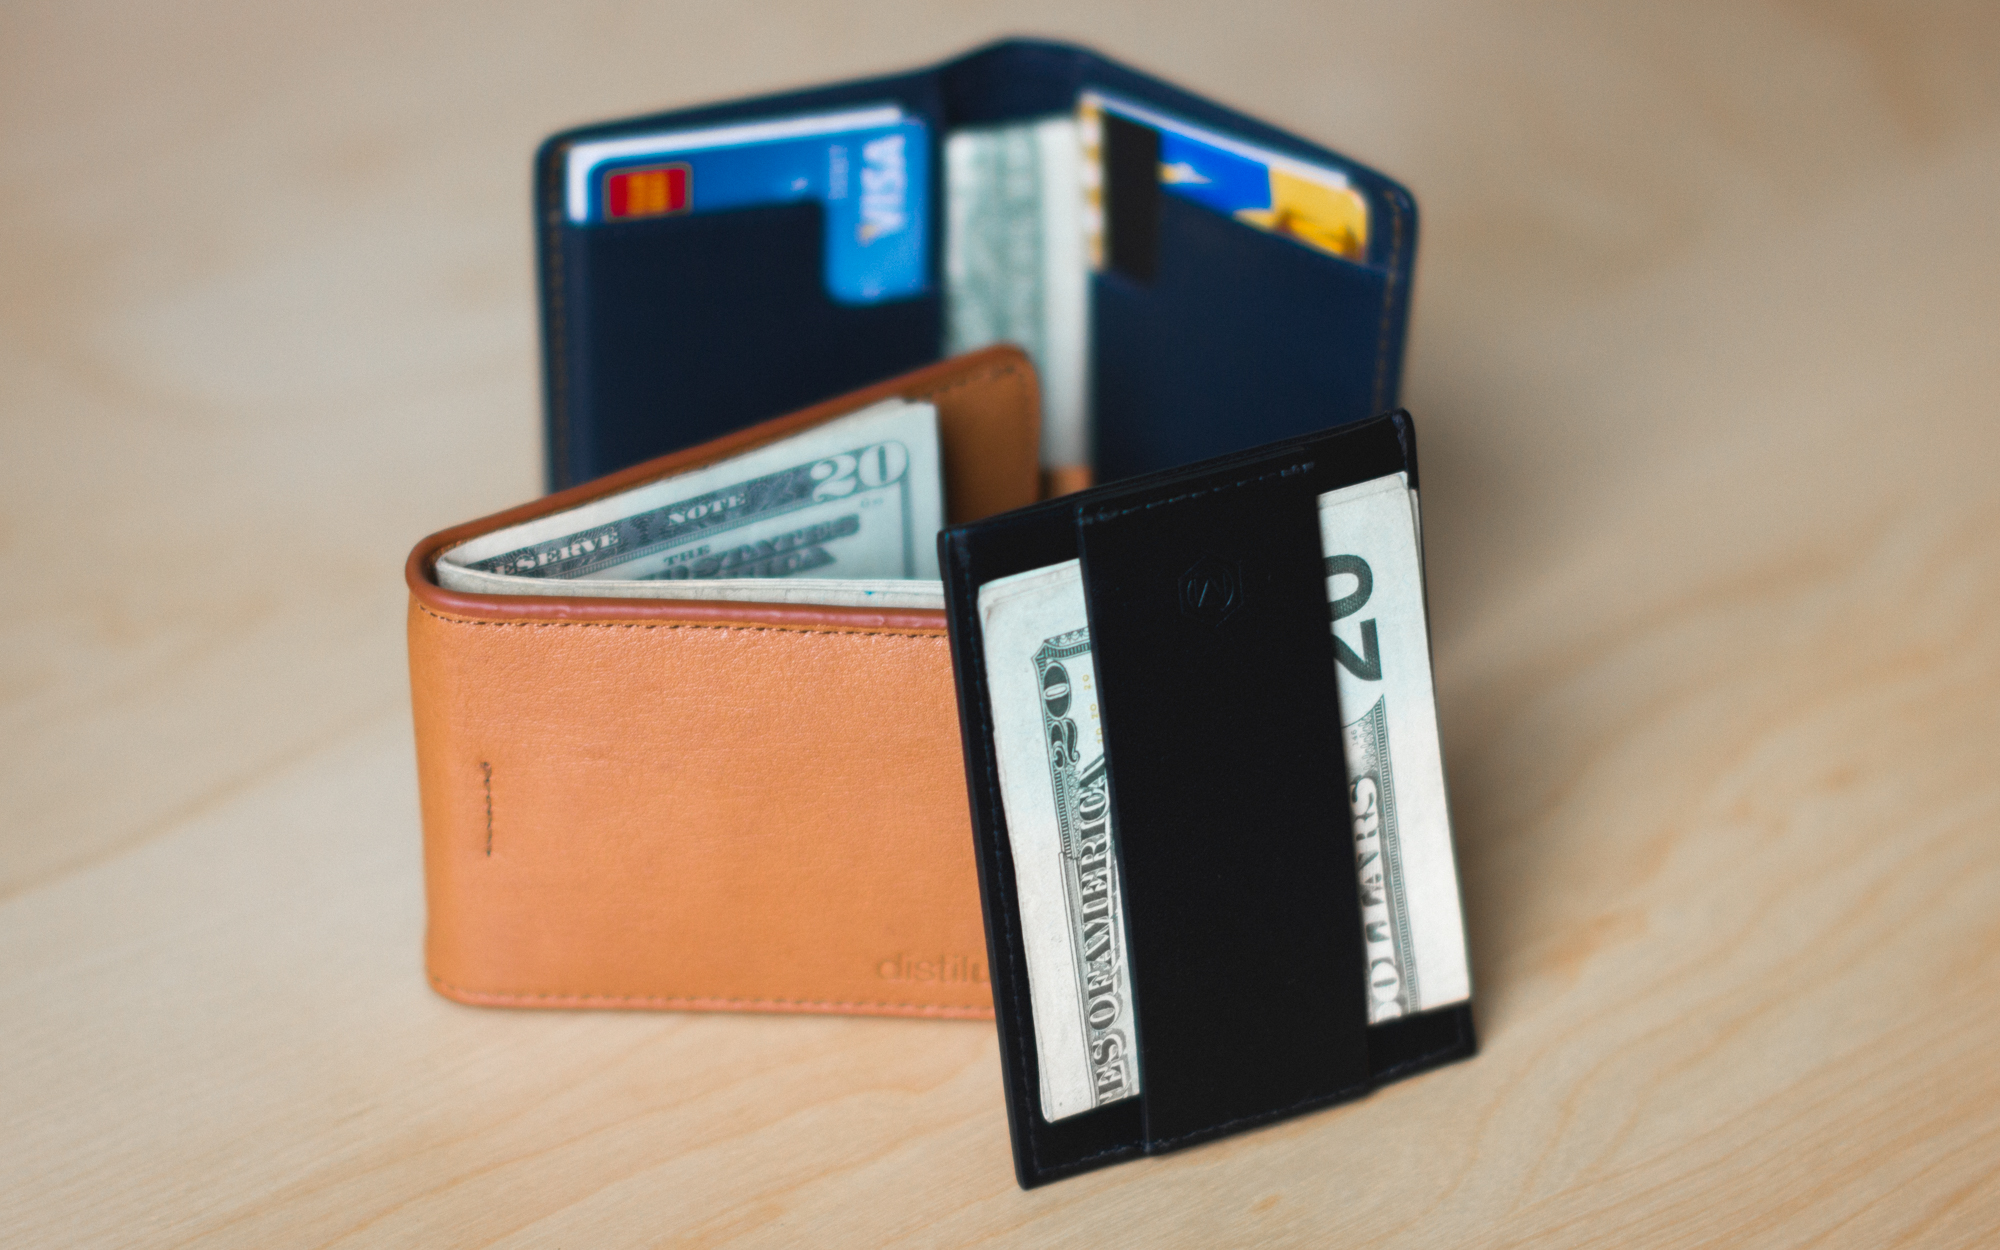 The Best Minimalist EDC Wallets for Carrying Cash